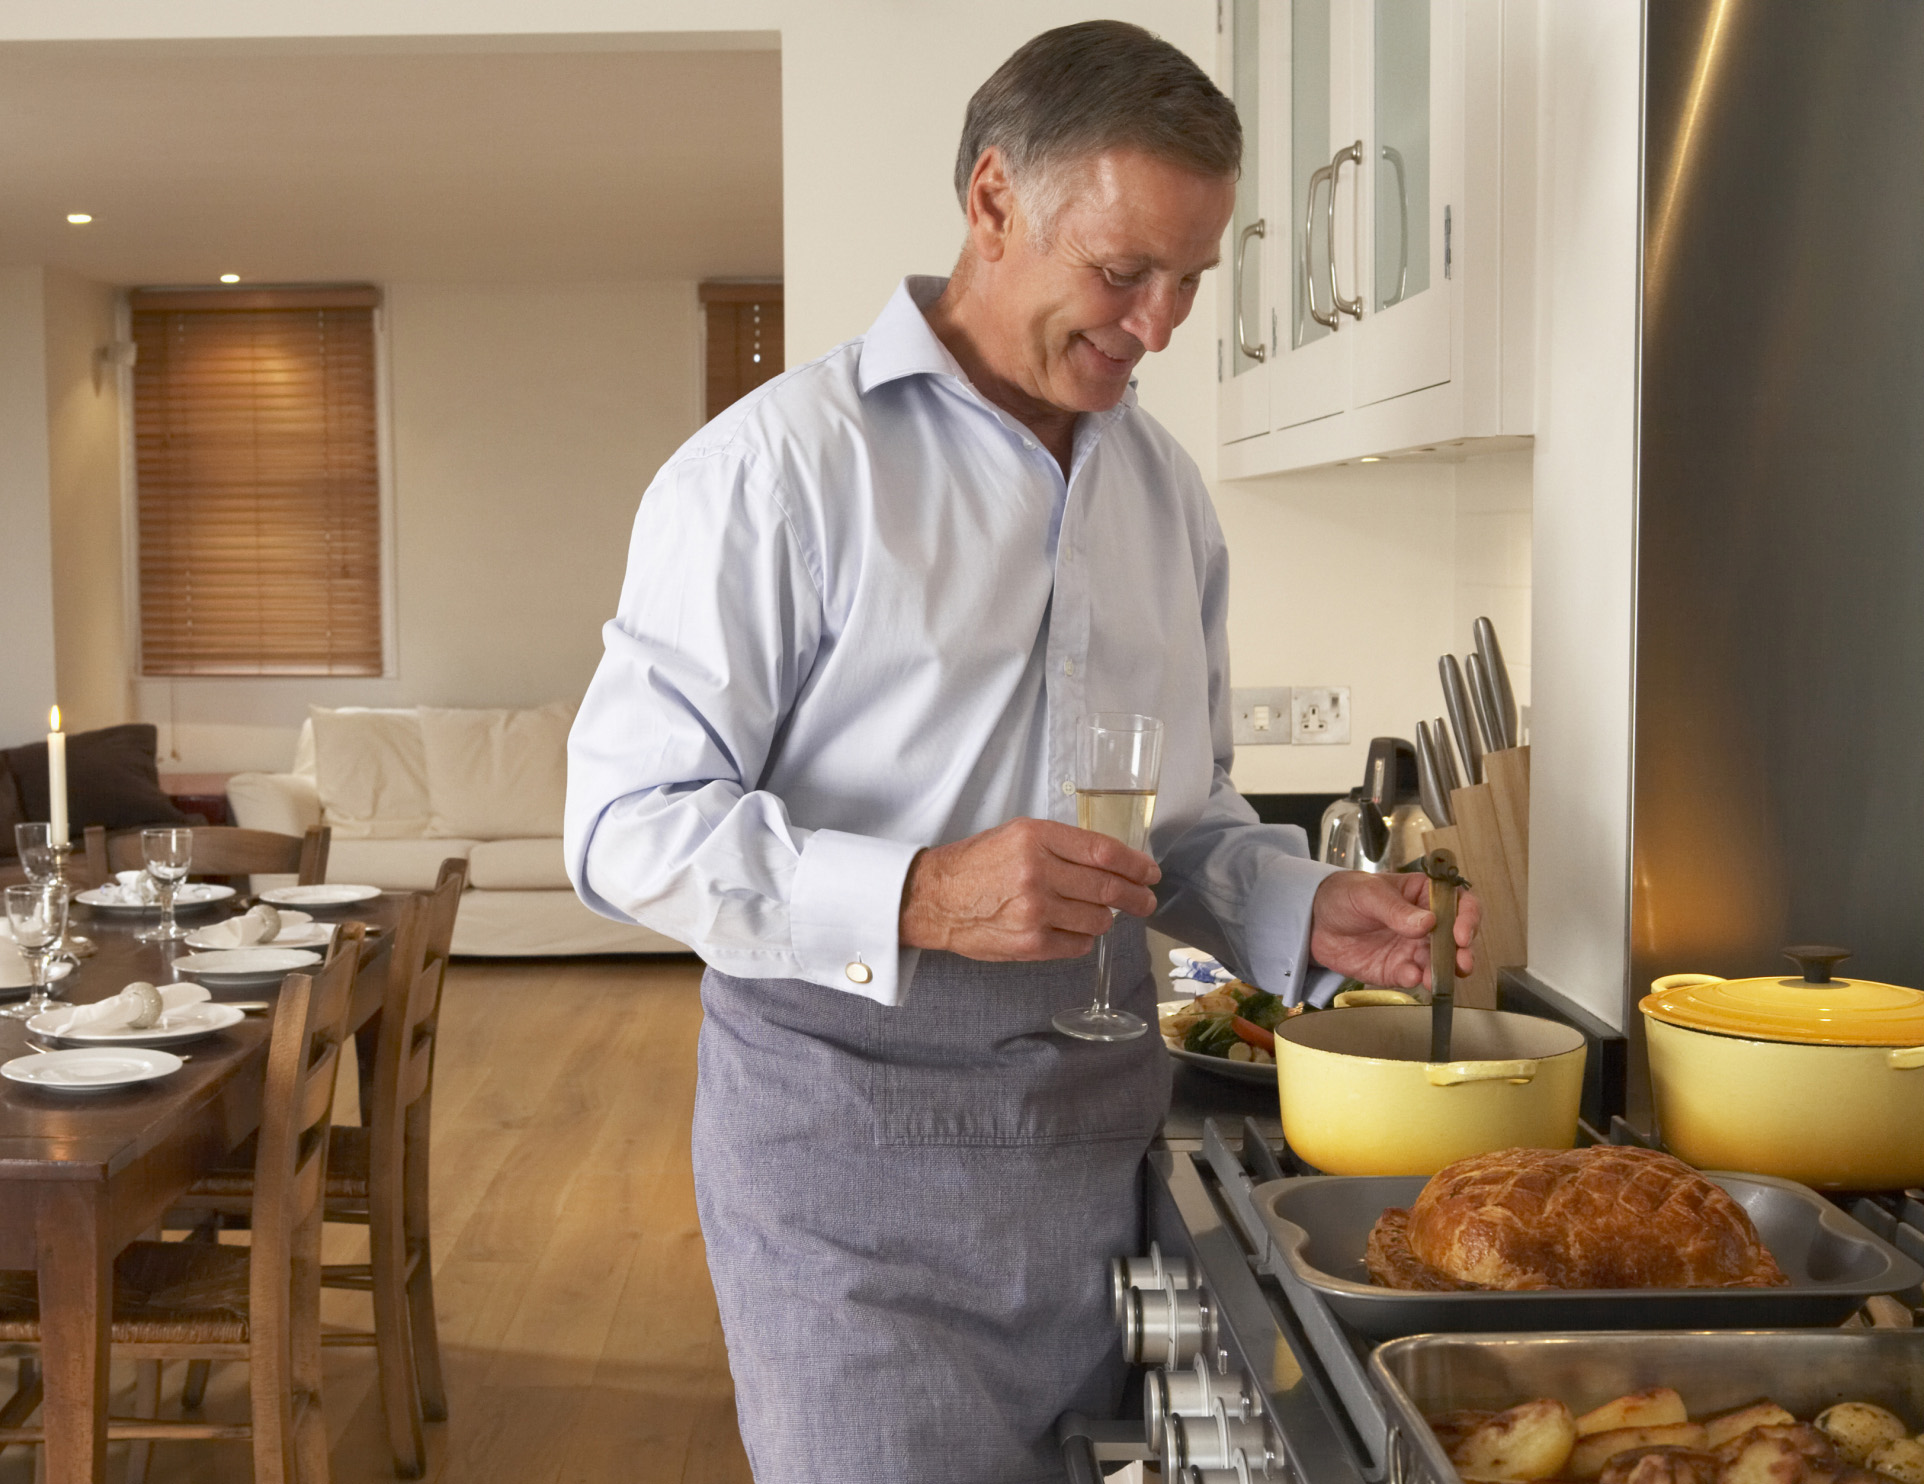 Older-man-cooking-drinking-wine-crop-ThinkstockPhotos-100566054-Cathy Yeulet